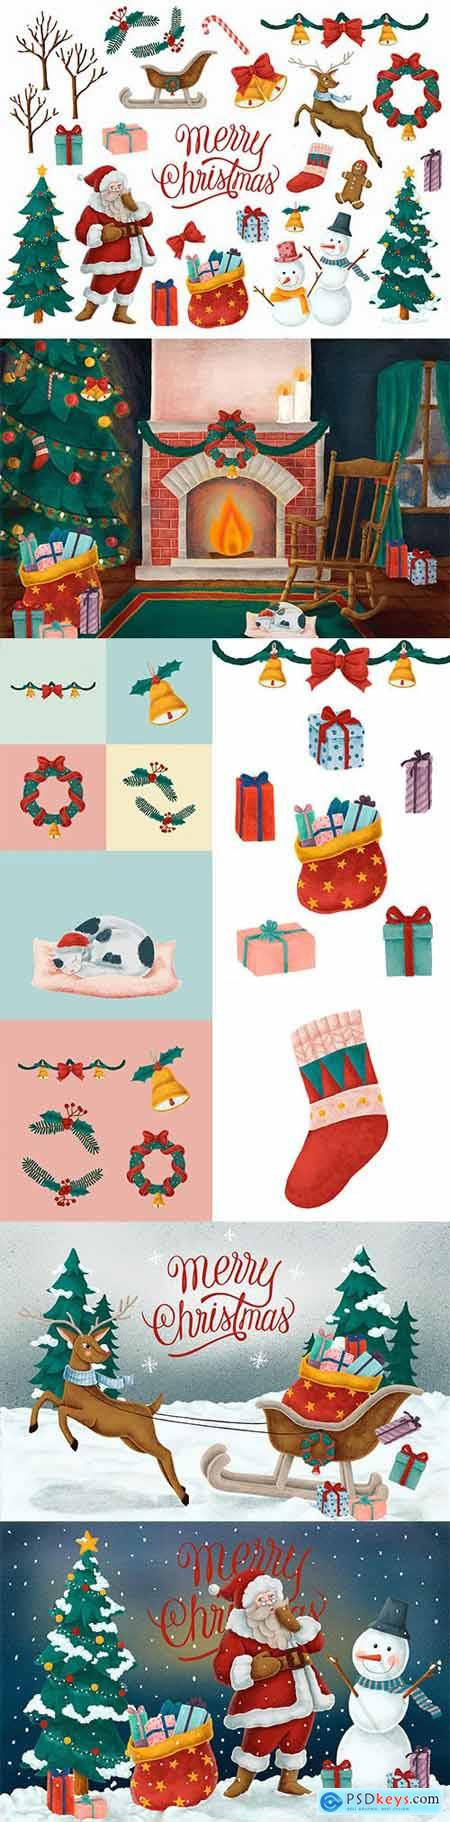 Set of Merry Christmas Hand Drawn Card and Illustrations